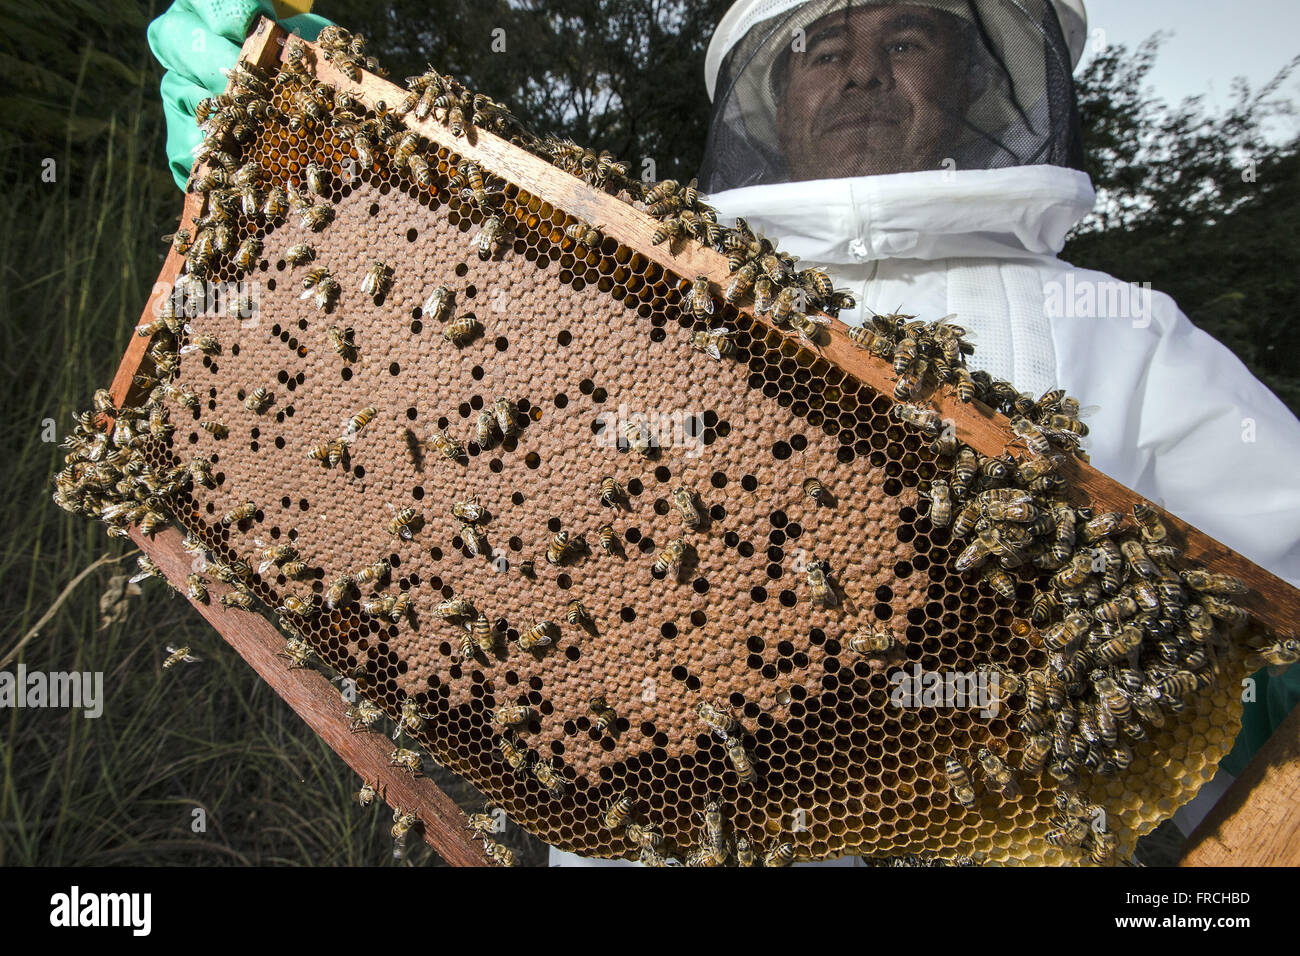 Beekeeper working in apiary honey extraction in the Congonhas district - Stock Image